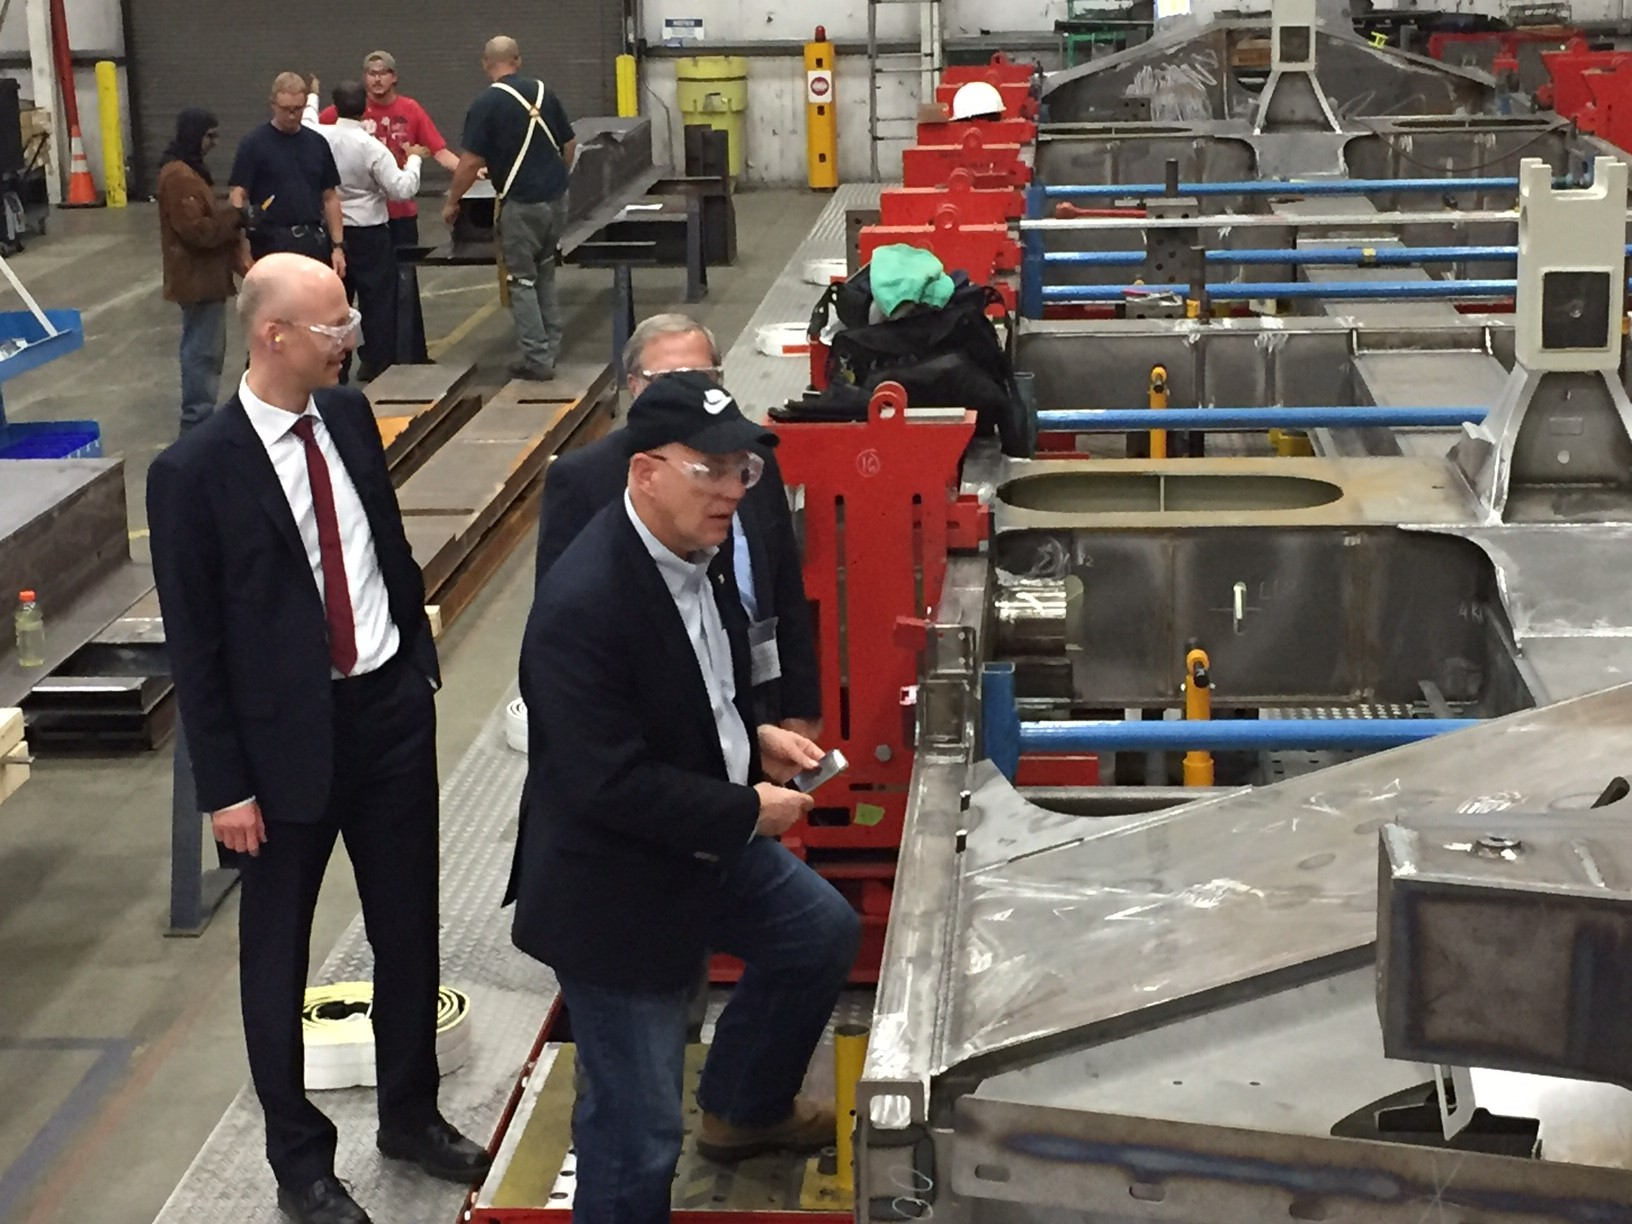 Jeff Knueppel, SEPTA General Manager inspects the first frame assembly for new SEPTA locomotive with representatives at Siemens Rail Manufacturing Plant in Sacramento, CA. (frame assembly in this image is upside down to facilitate this step of the fabrication).